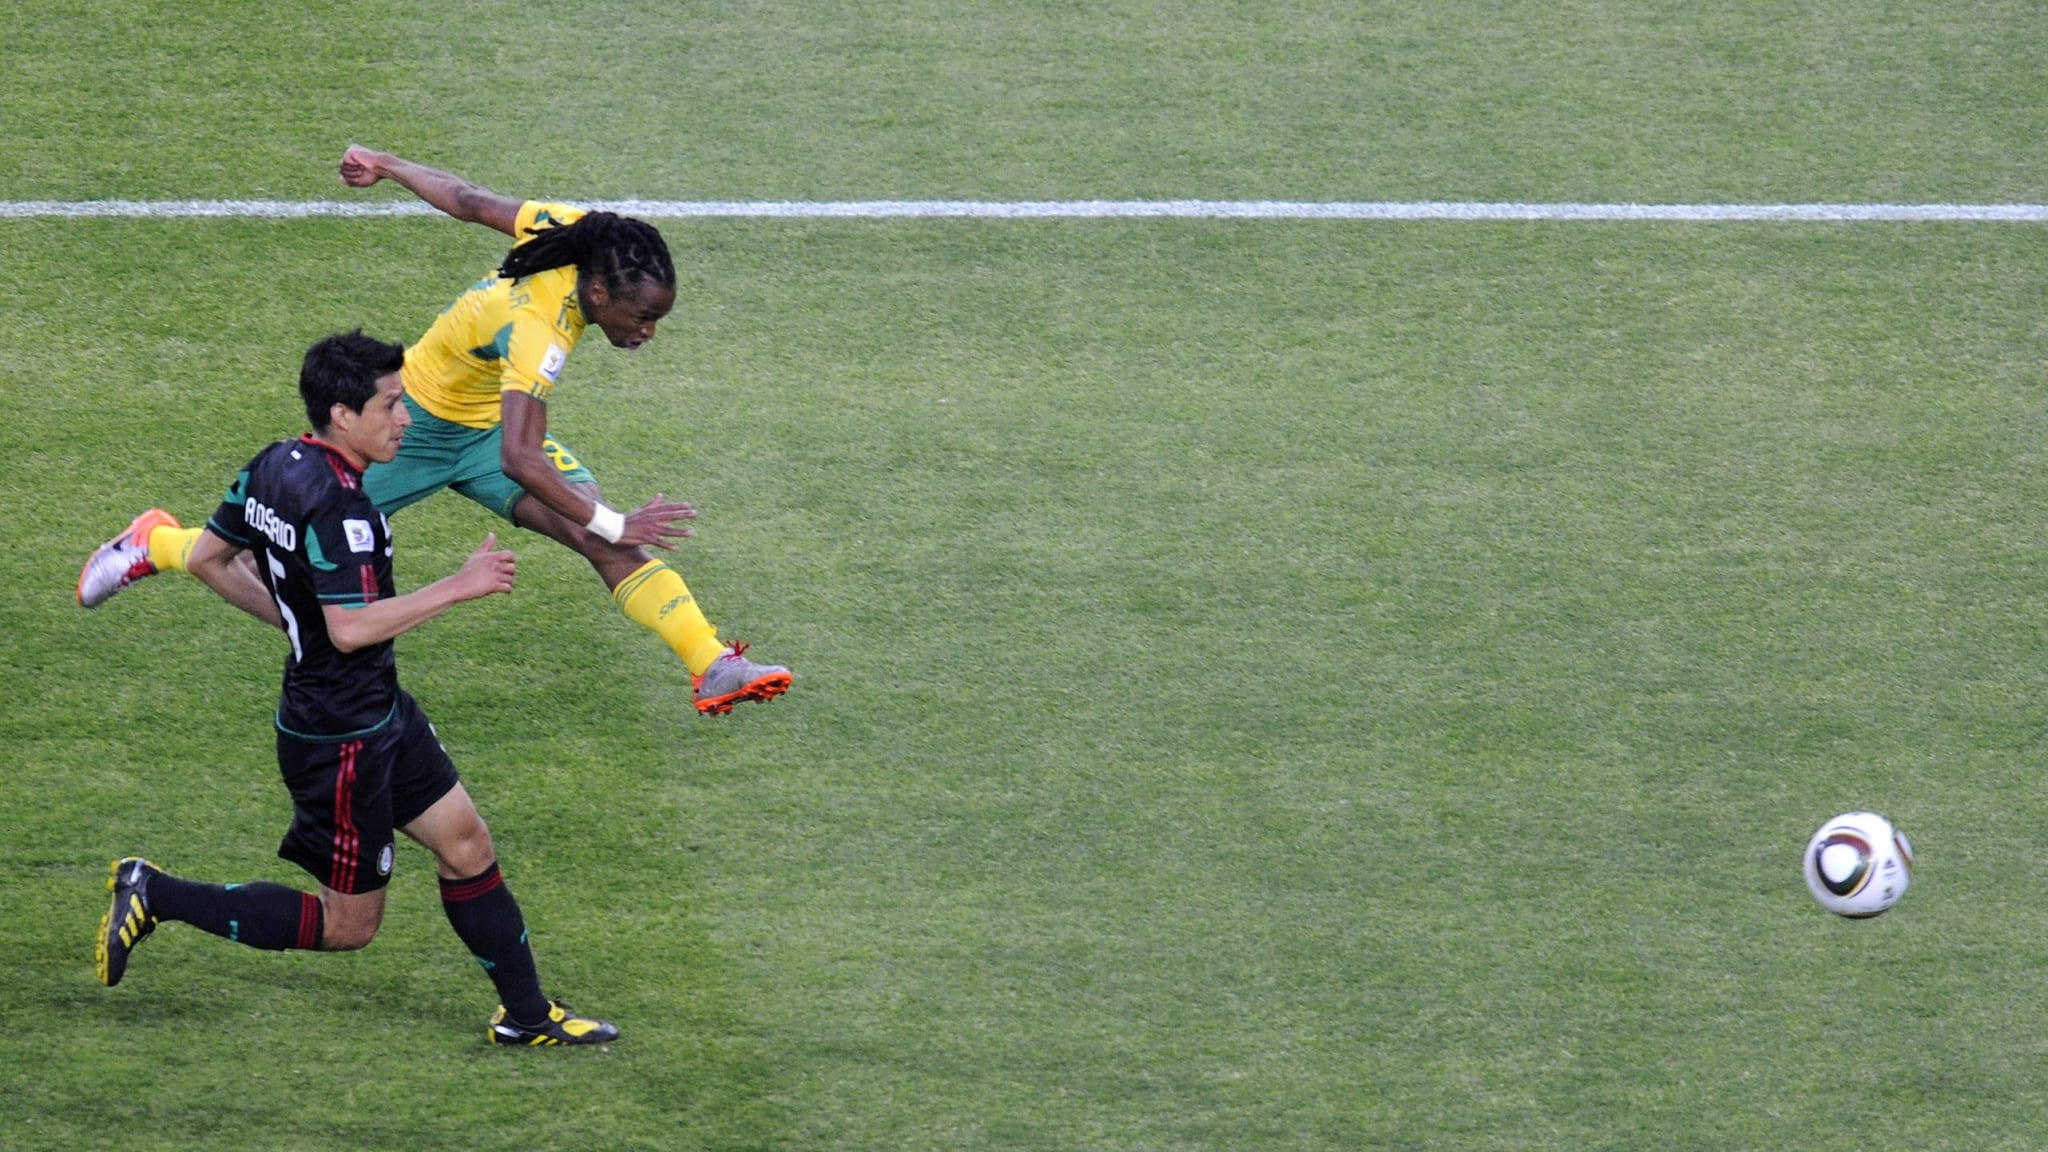 June 11, 2010: Siphiwe Tshabalala of South Africa (RSA, yellow) scores during a group A match of the 2010 FIFA World Cup against Mexico at Soccer City stadium in Soweto.